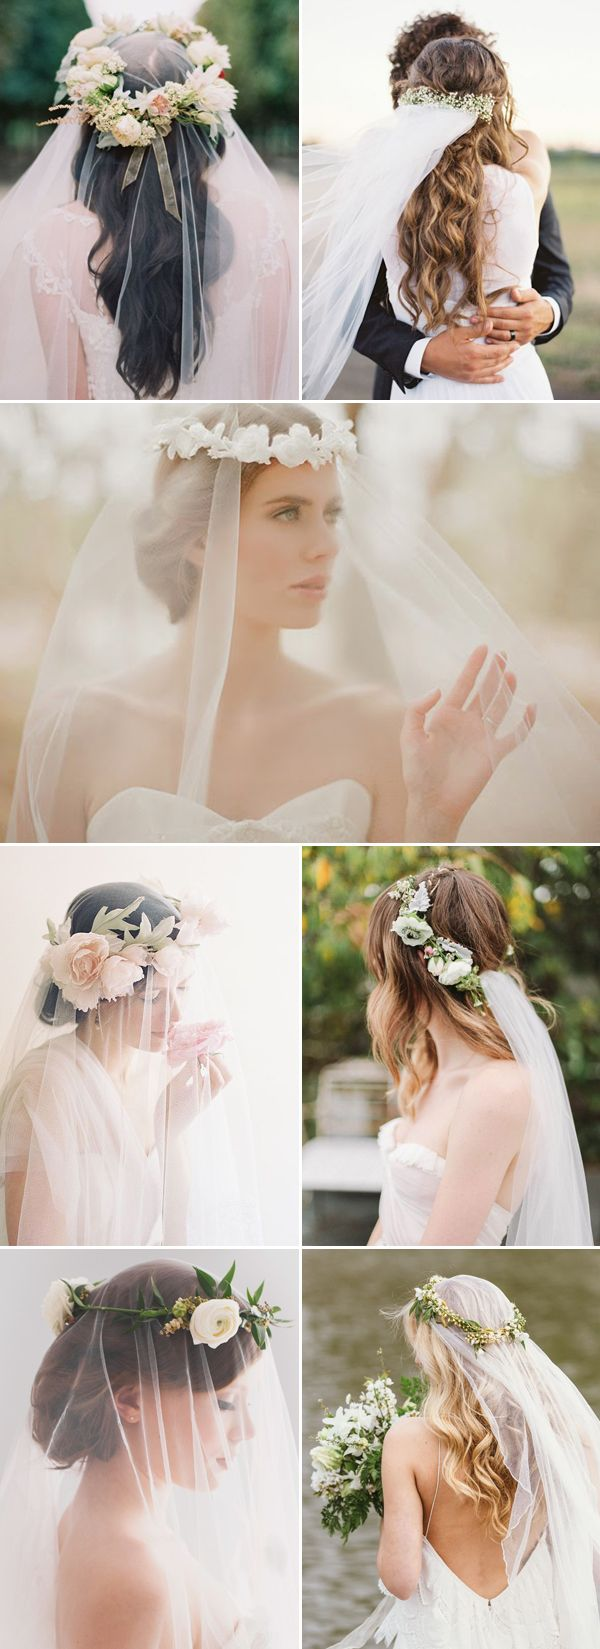 5 Chic Bridal Hairstyles That Look Good With Veils Wedding Hairstyles With Veil Wedding Long Hair Styles